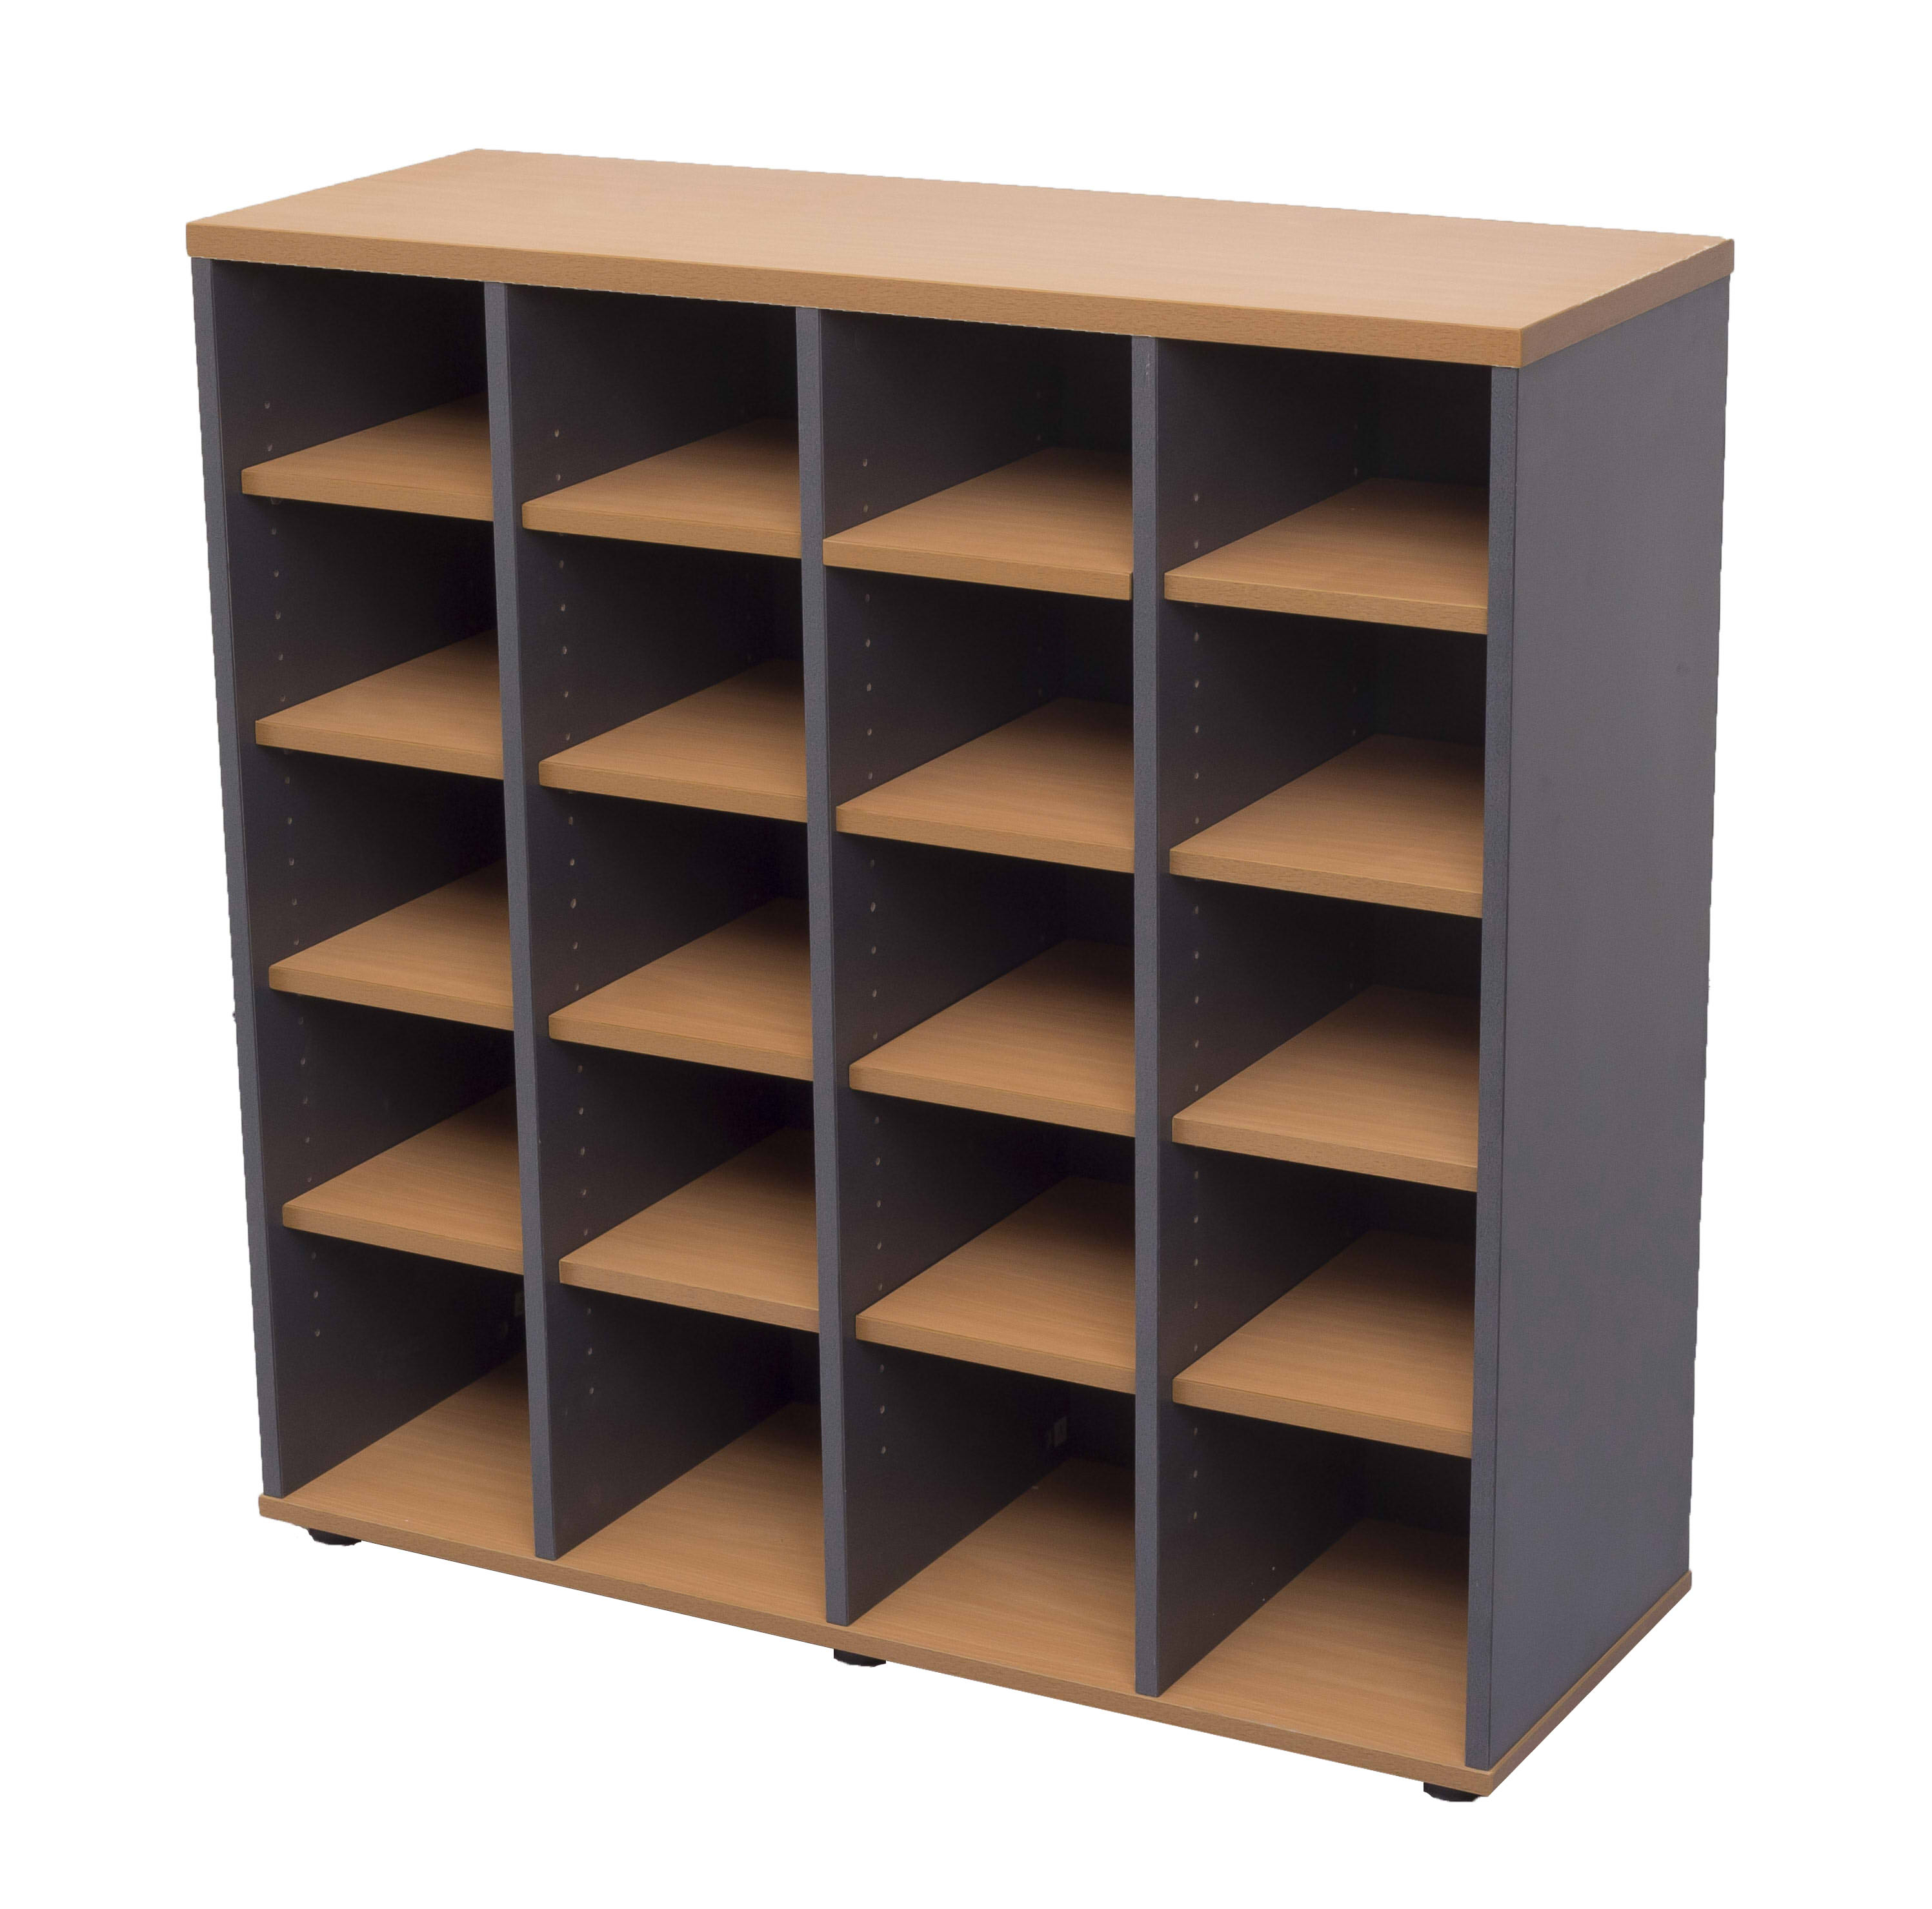 Rapid Worker Storage Wallaces Office Furniture